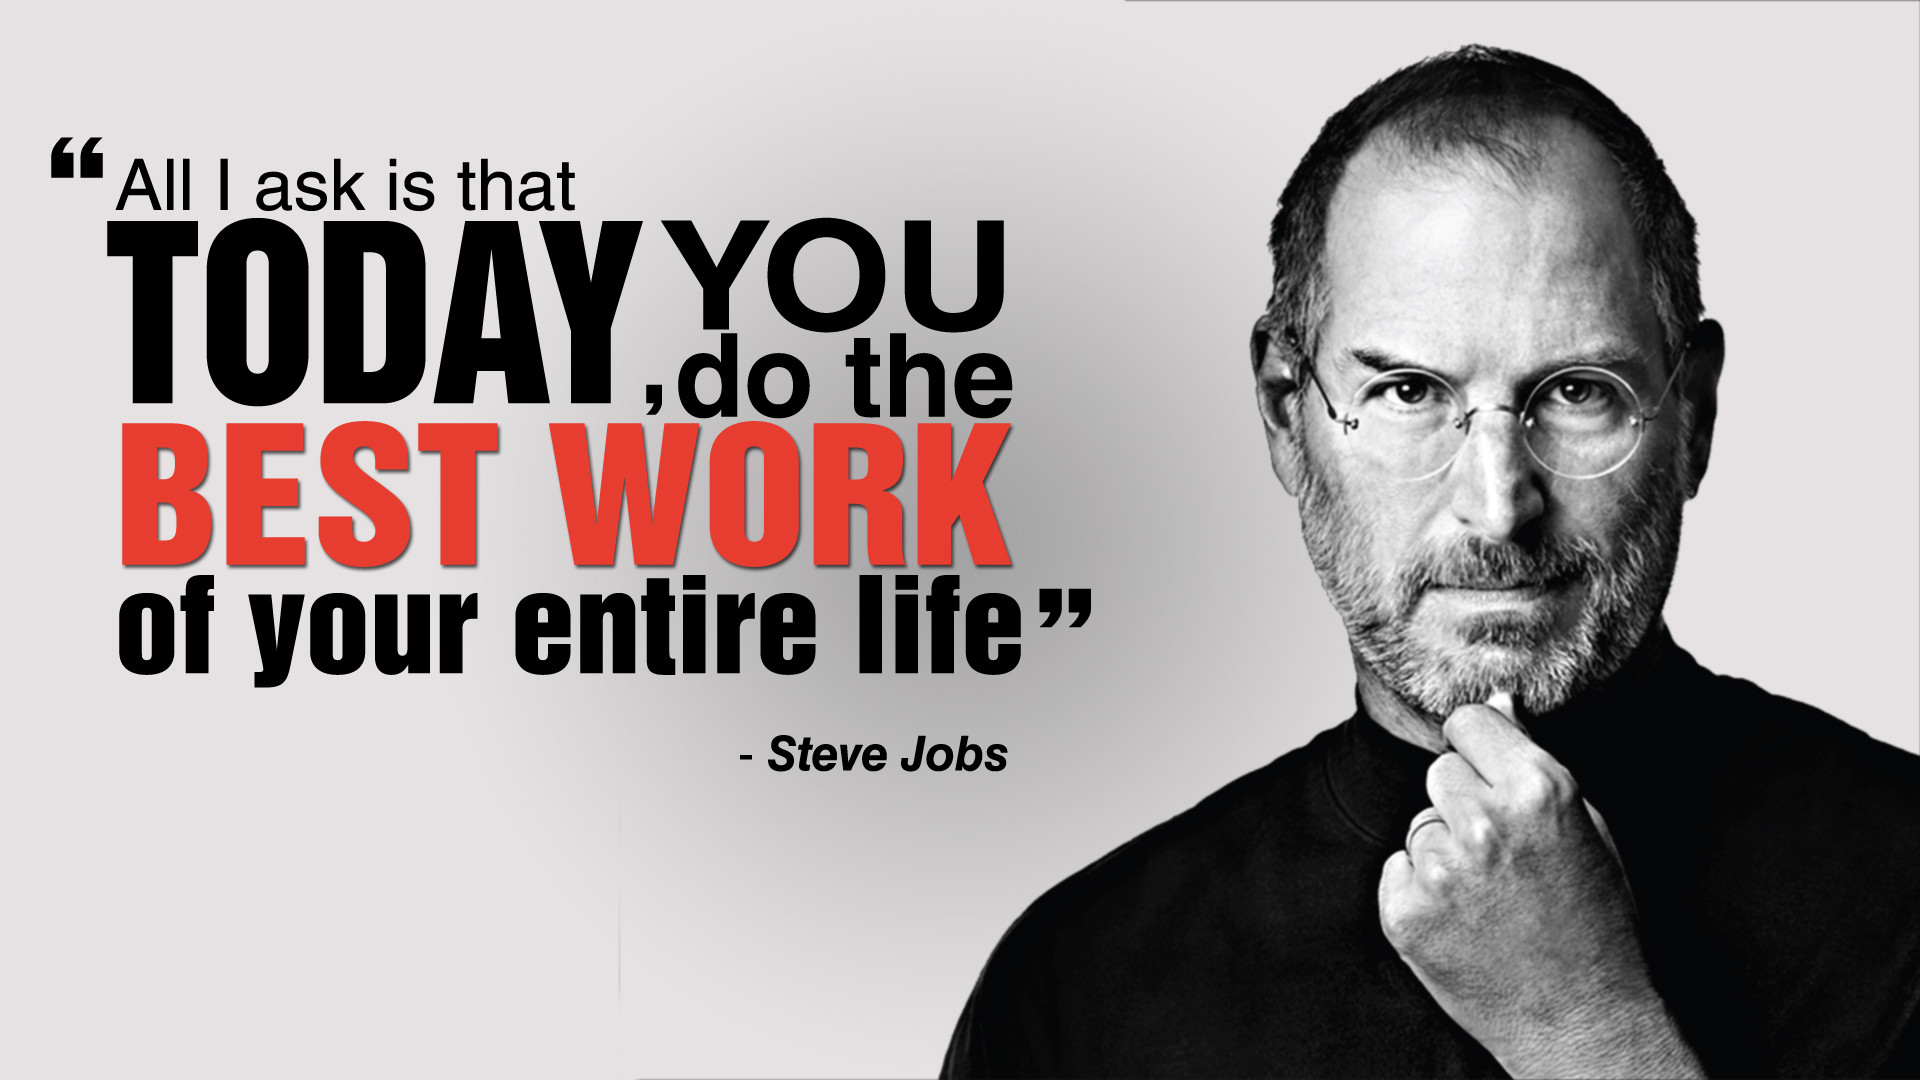 Steve Jobs Quotes On Life Inspirational Quotessteve Jobs  The Insider Tales